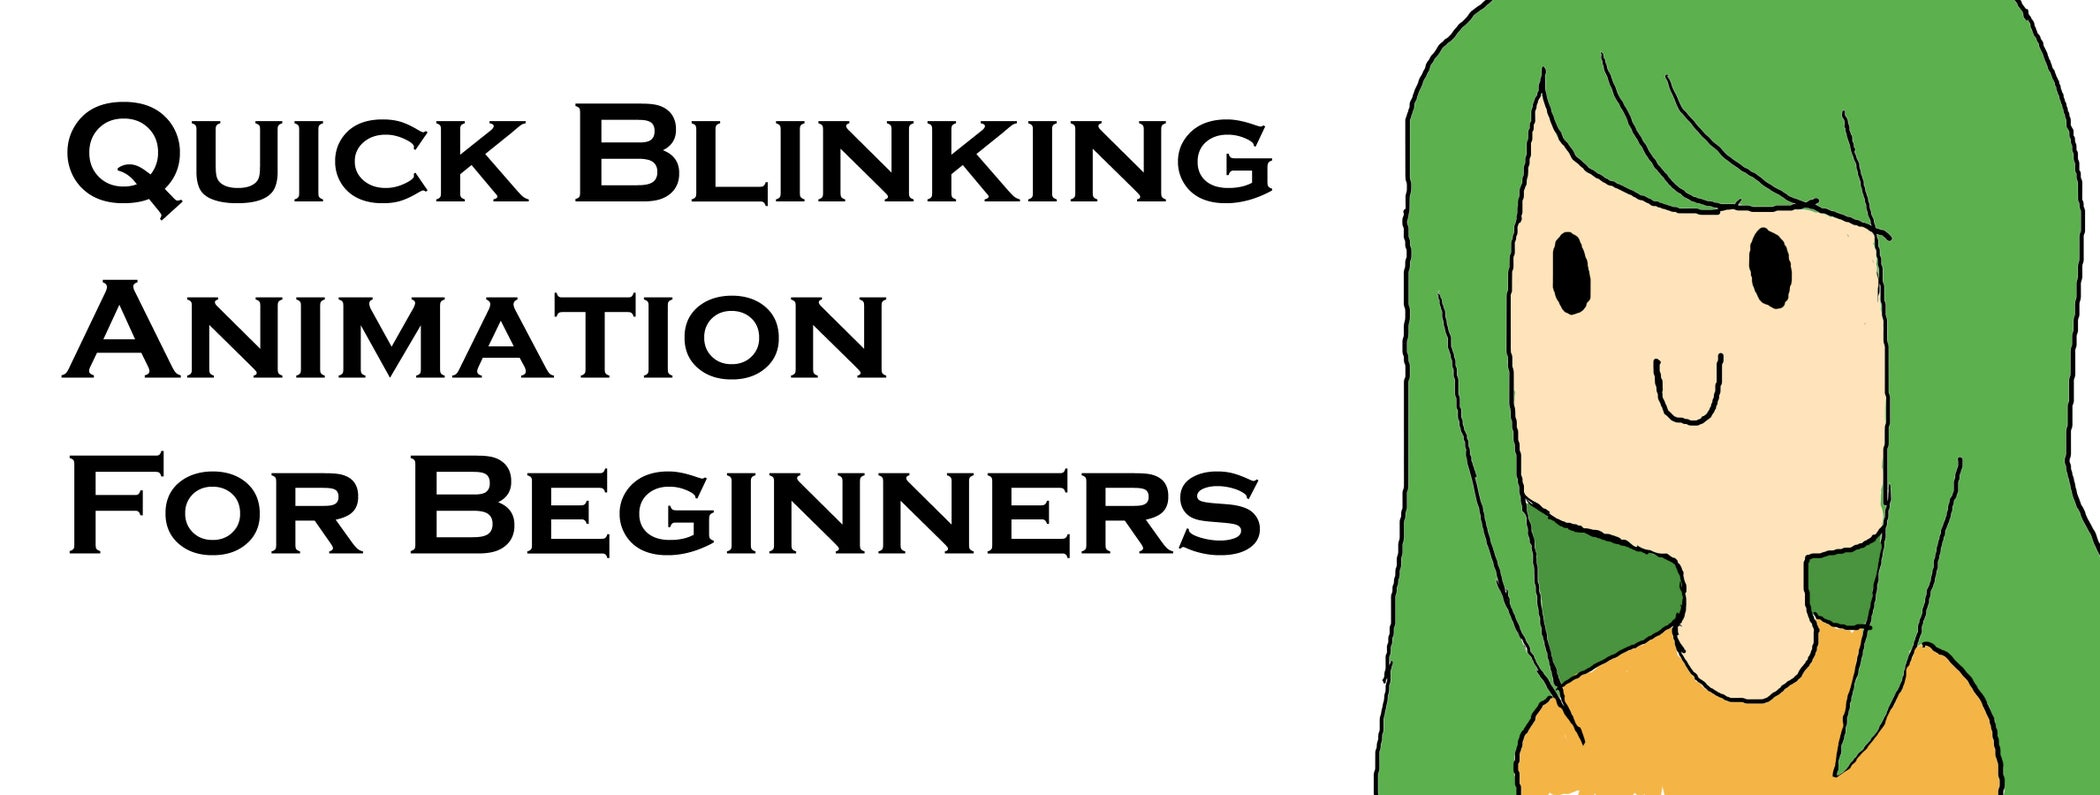 Quick and simple blinking animation for beginners 5 steps